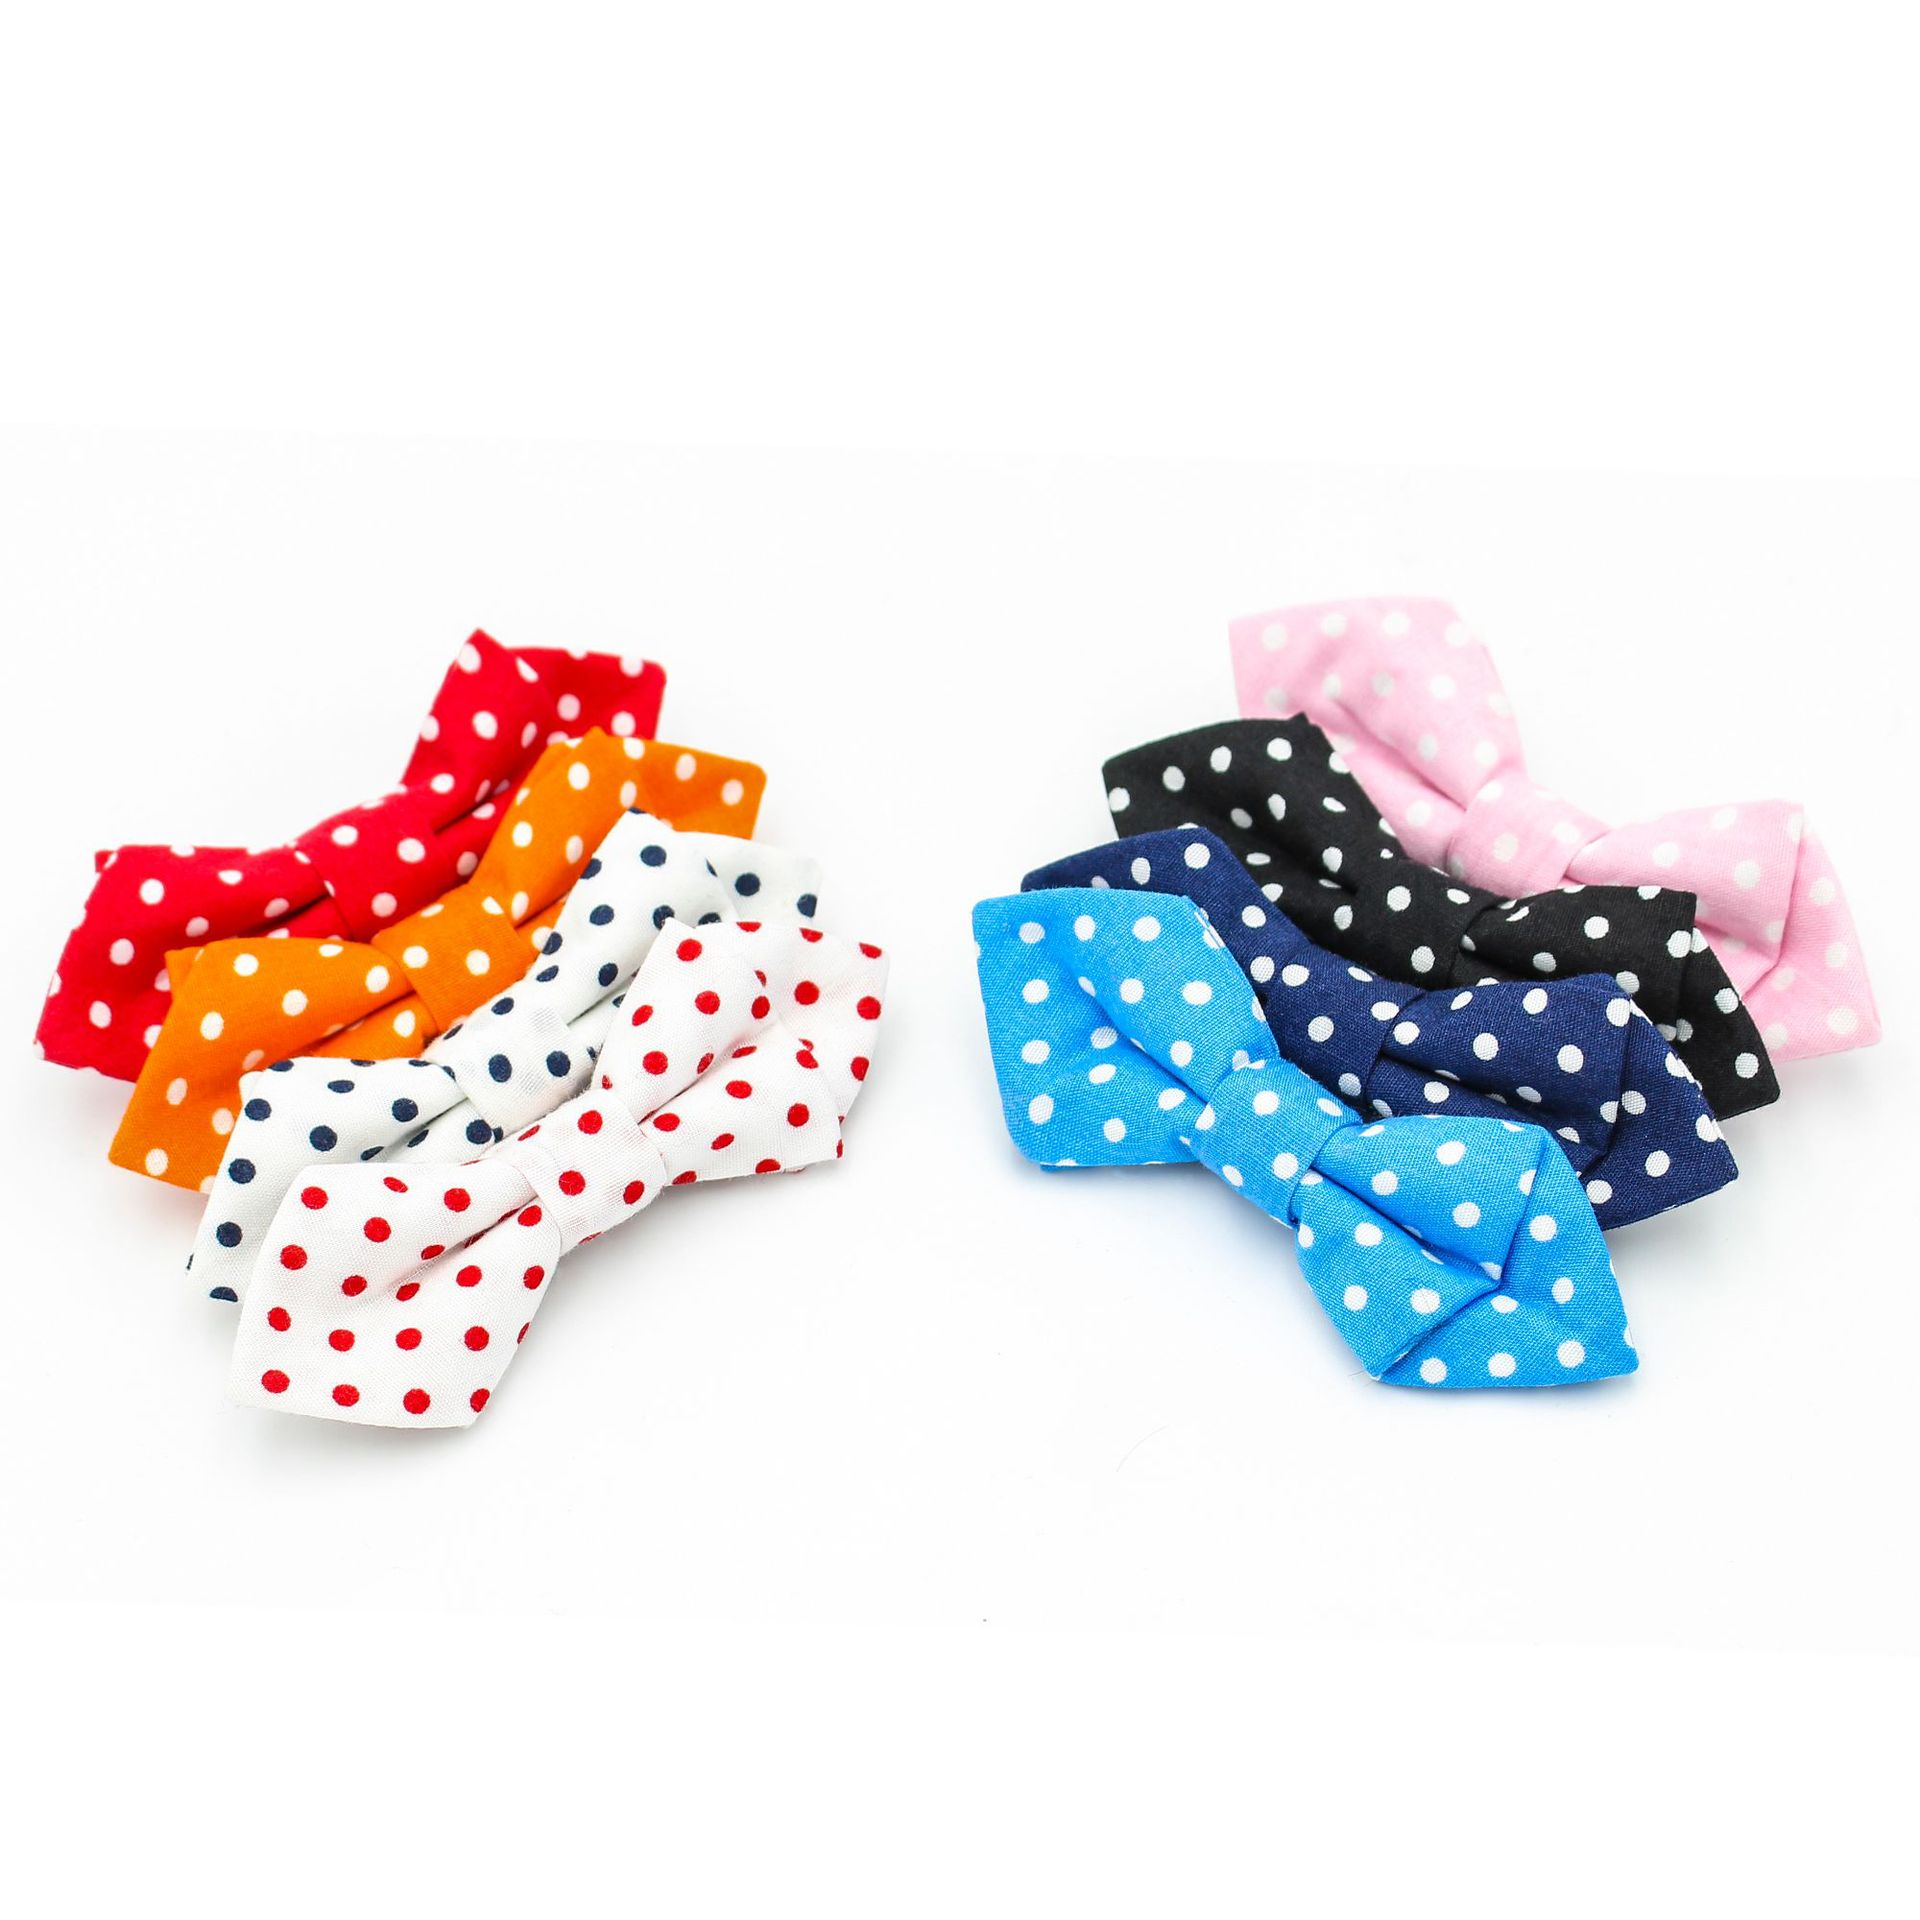 VEEKTIE Safety Pin Bow Tie Kids Children Boys Girls Baby Dots Bowtie Butterfly Plaid Dot Corbatas Krawatte Noeud Papillon Lovely